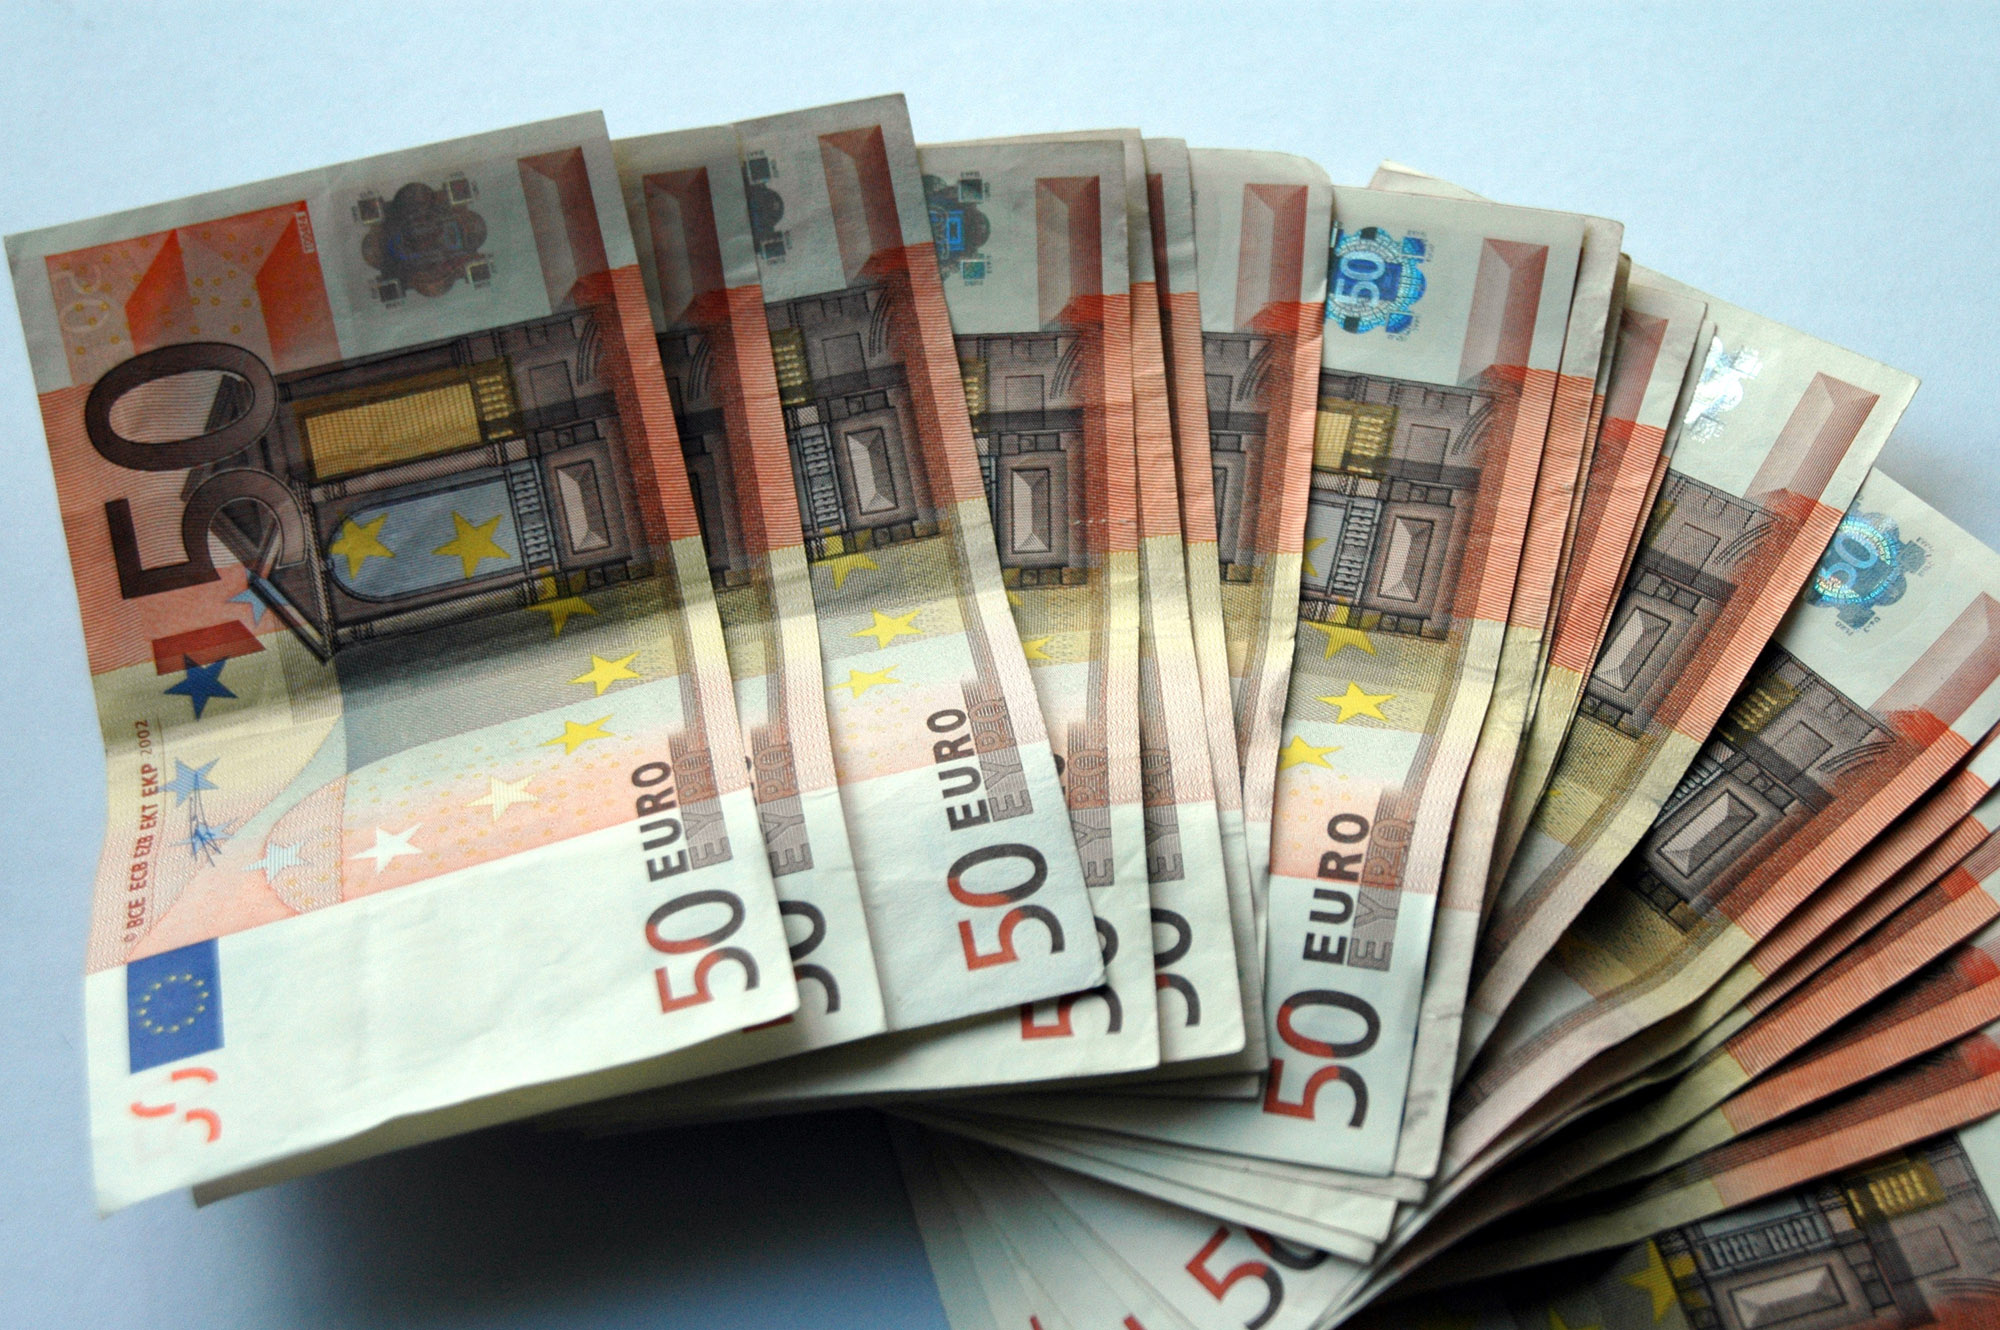 geld, money, bankbiljet, banknote, briefgeld, bills, euro, papiergeld, eurobiljet, vijftig, fifty